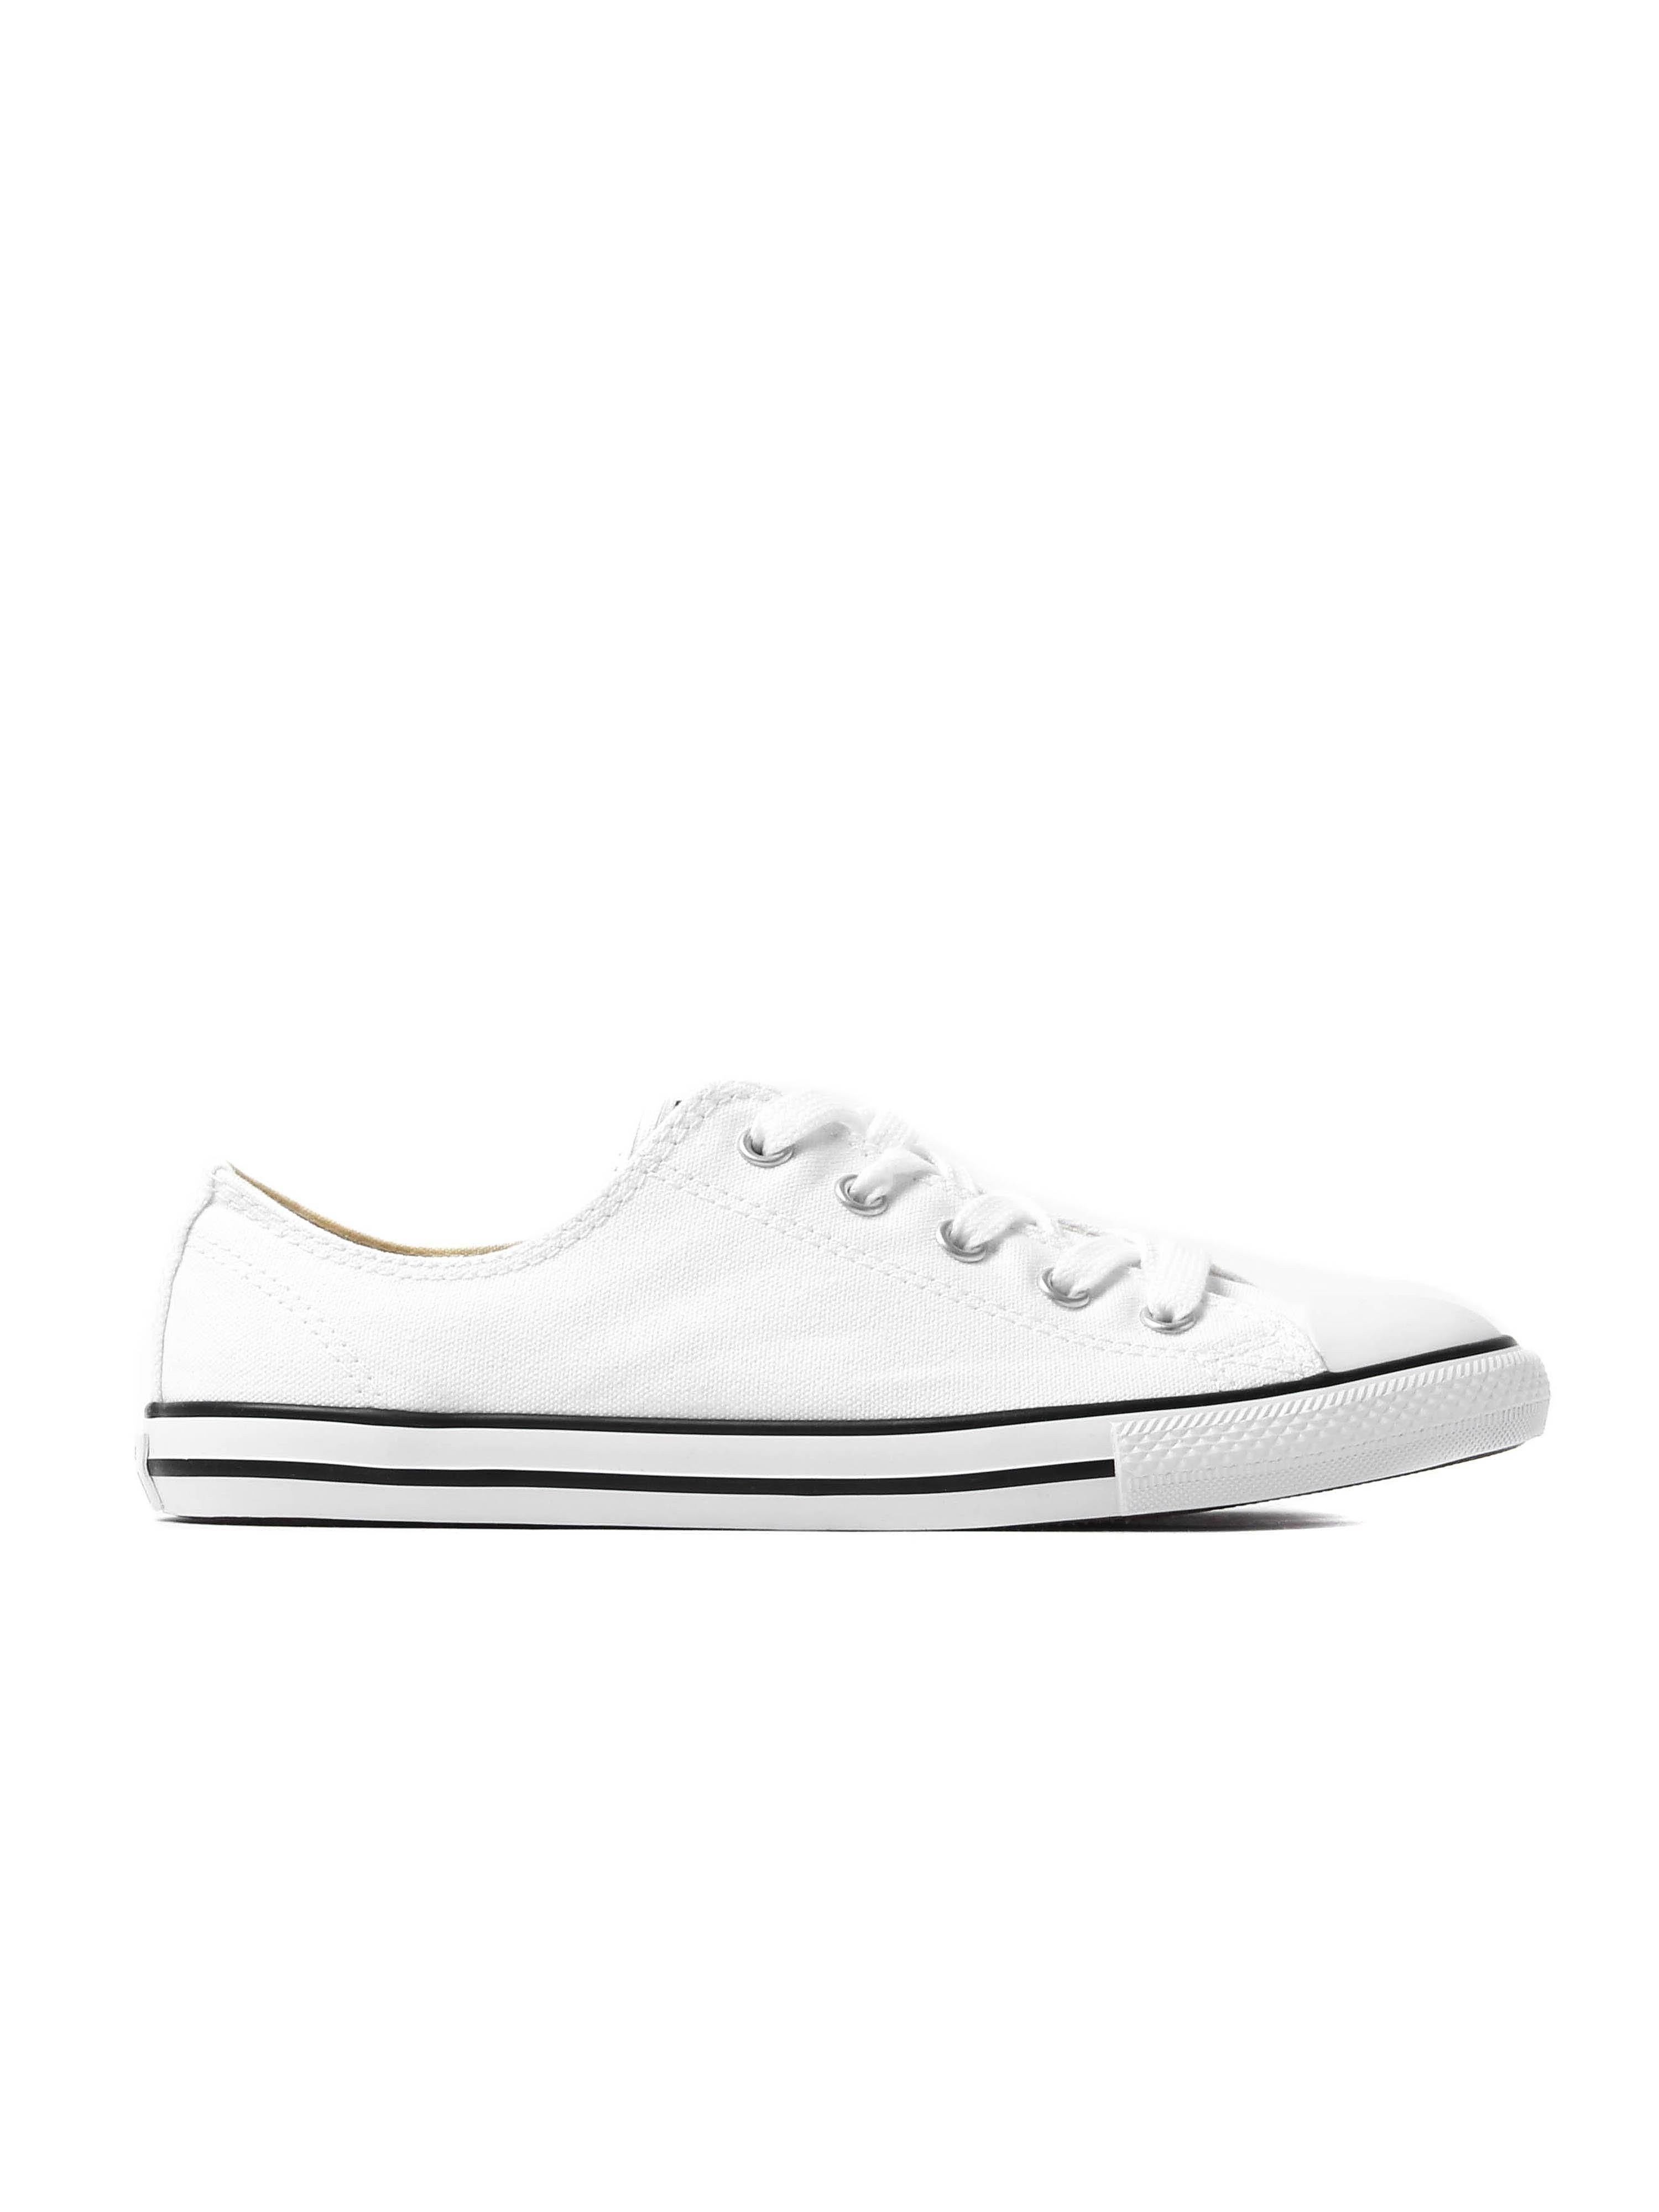 Converse Women's All Star Dainty OX Canvas Trainers - White